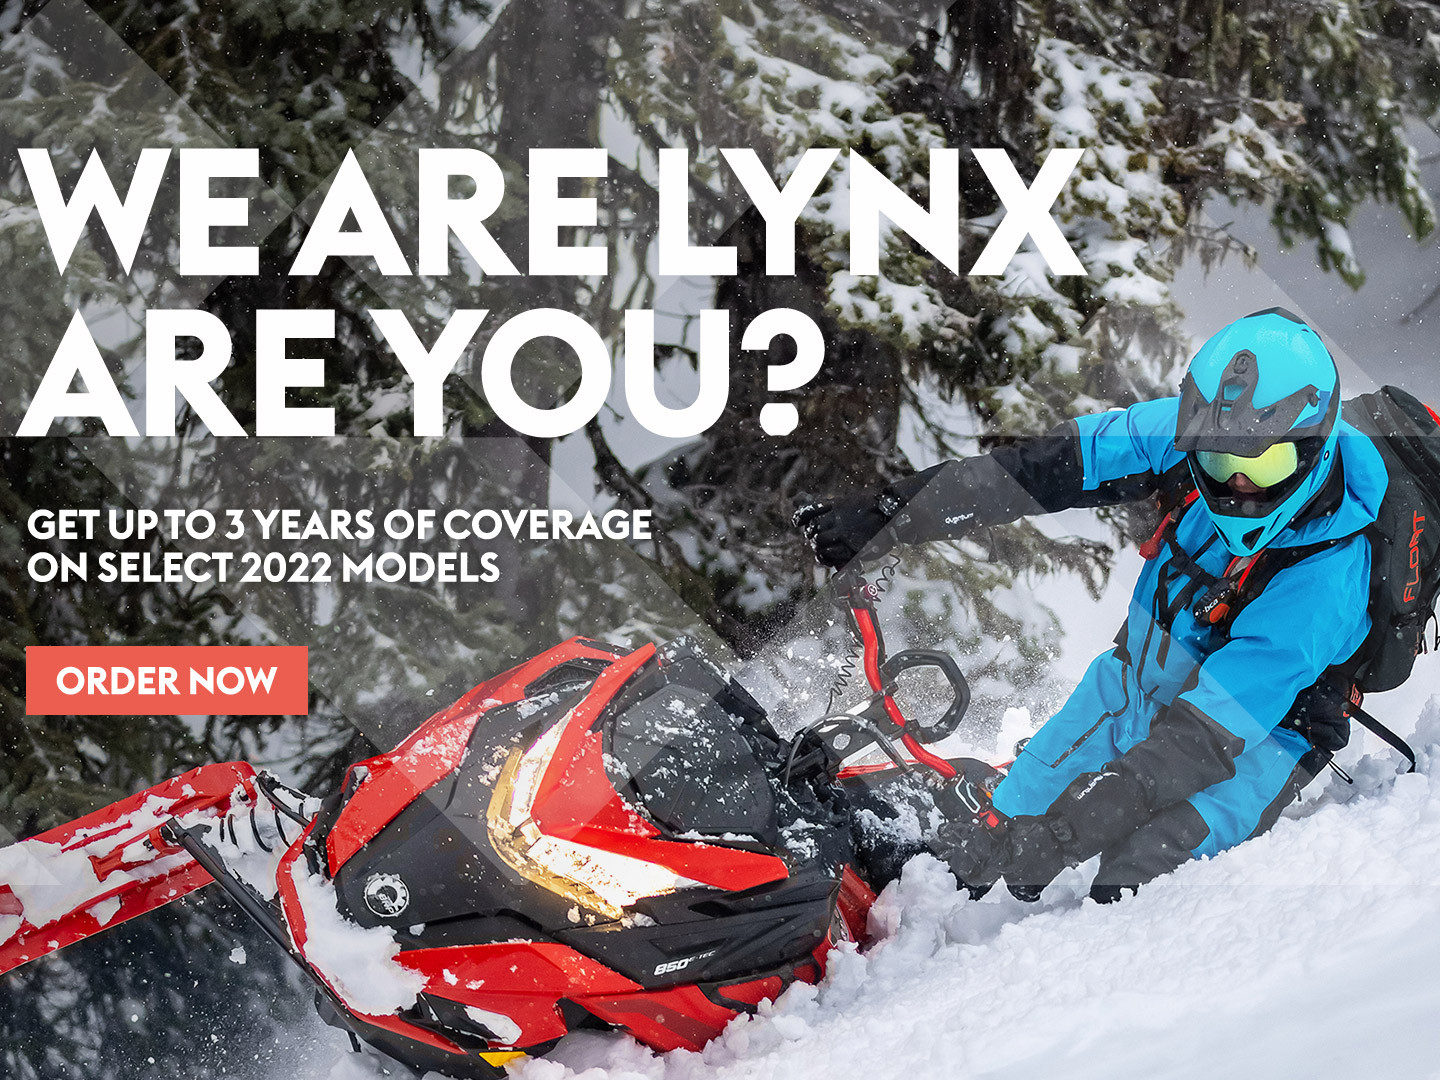 Order Your New 2022 Lynx Snowmobile!!  - March 31st Deadline